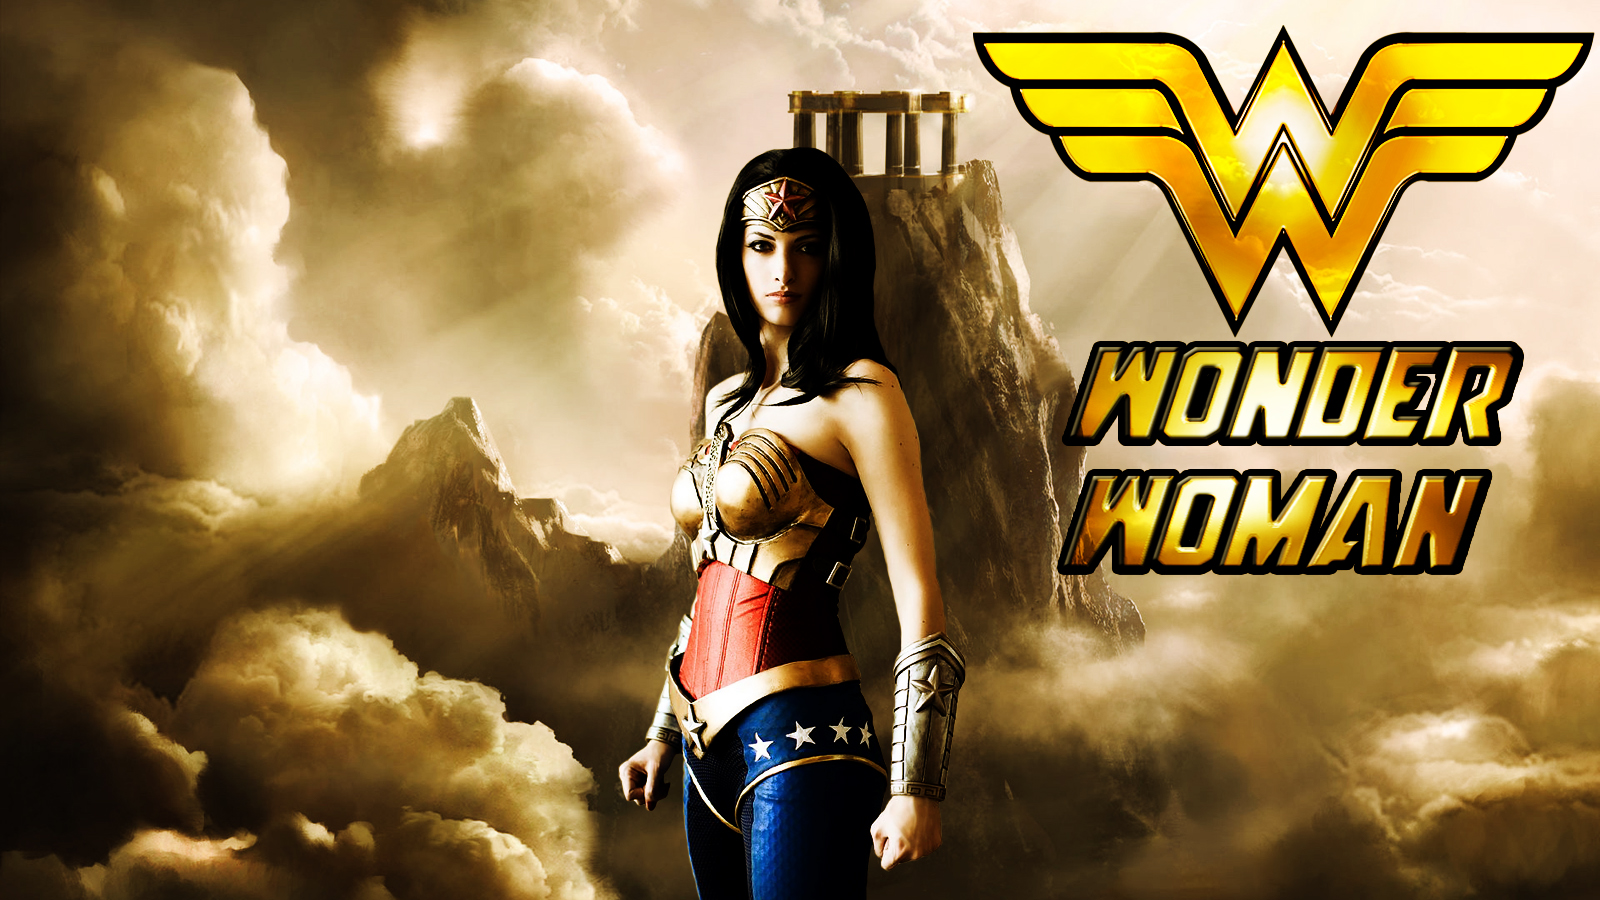 Wonder Woman cosplay wp starring Katie George by SWFan1977